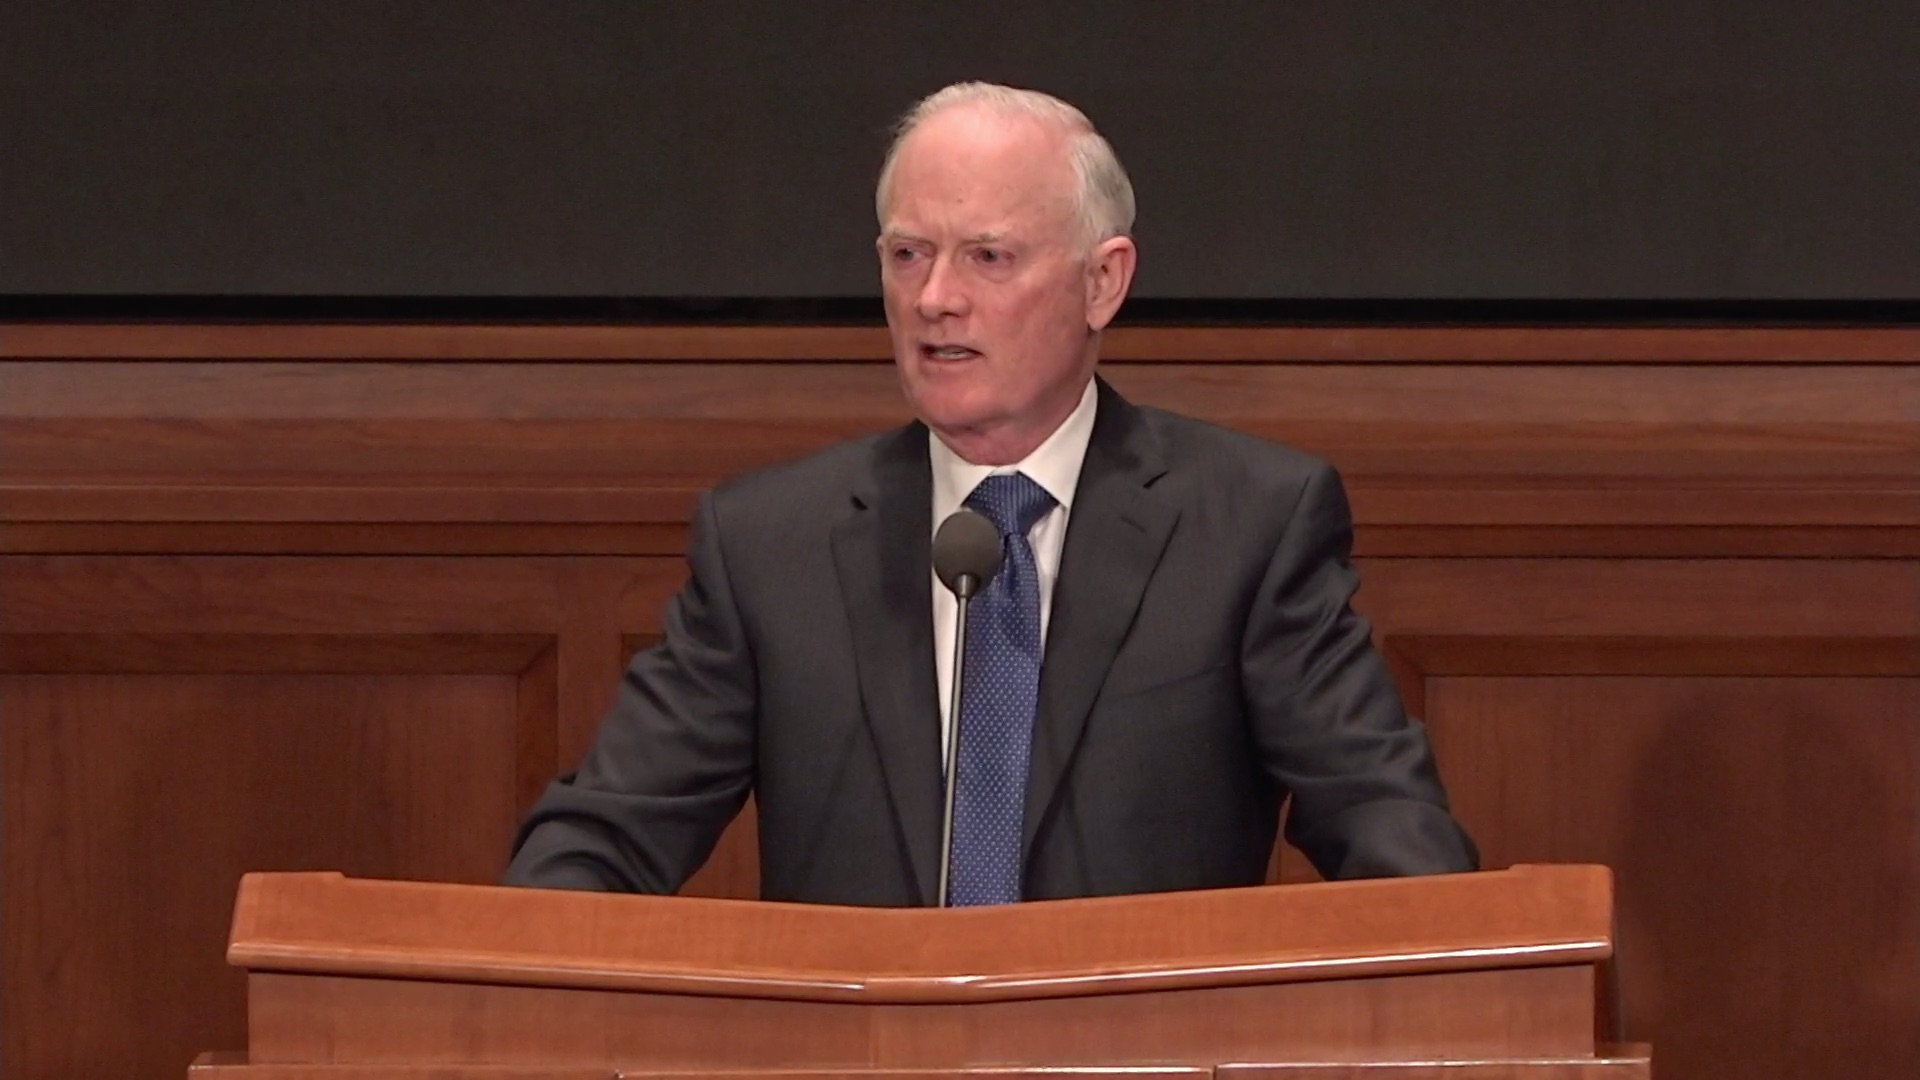 Elder Kim B. Clark, General Authority Seventy and commissioner of Church Education, speaks during the Seminaries and Institutes Annual Training Broadcast on June 12, 2019.